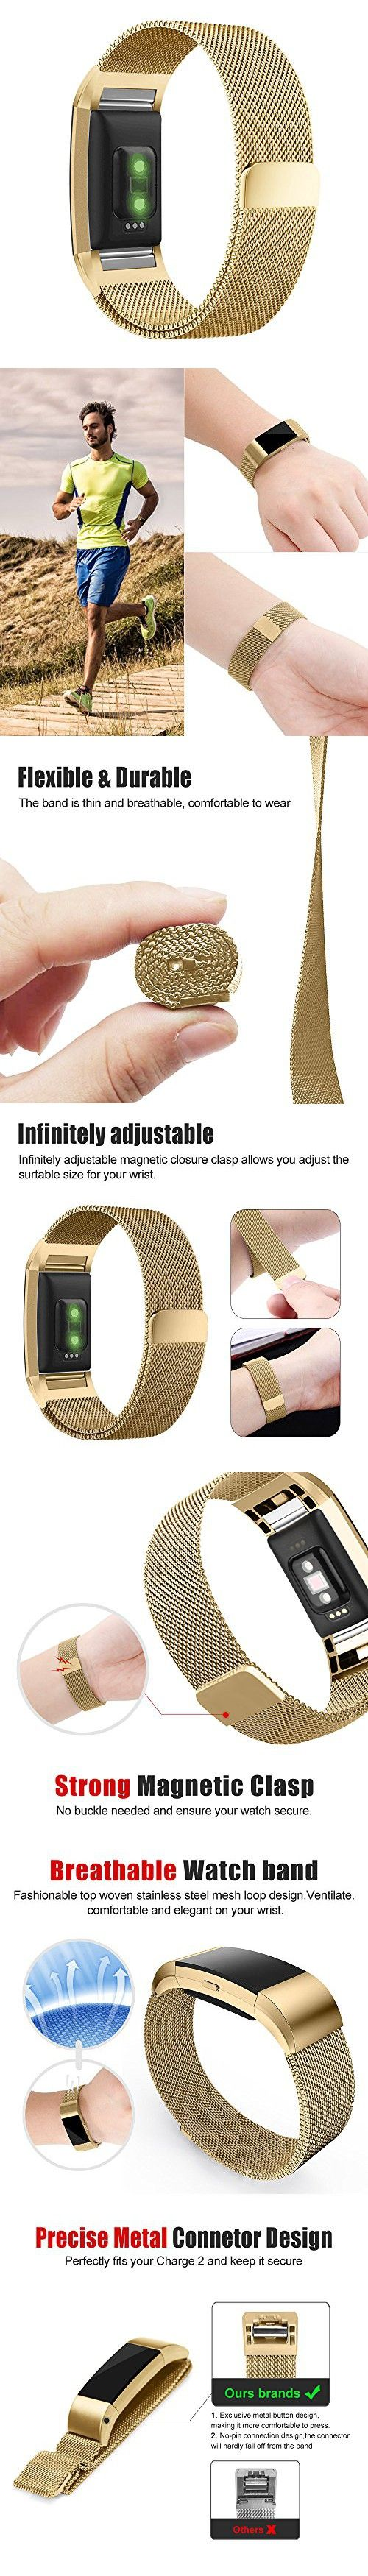 Fitbit Charge 2 Band, UMTELE Milanese Loop Stainless Steel Metal Bracelet Strap with Unique Magnet Lock, No Buckle Needed for Fitbit Charge 2 HR Fitness Tracker Gold Large